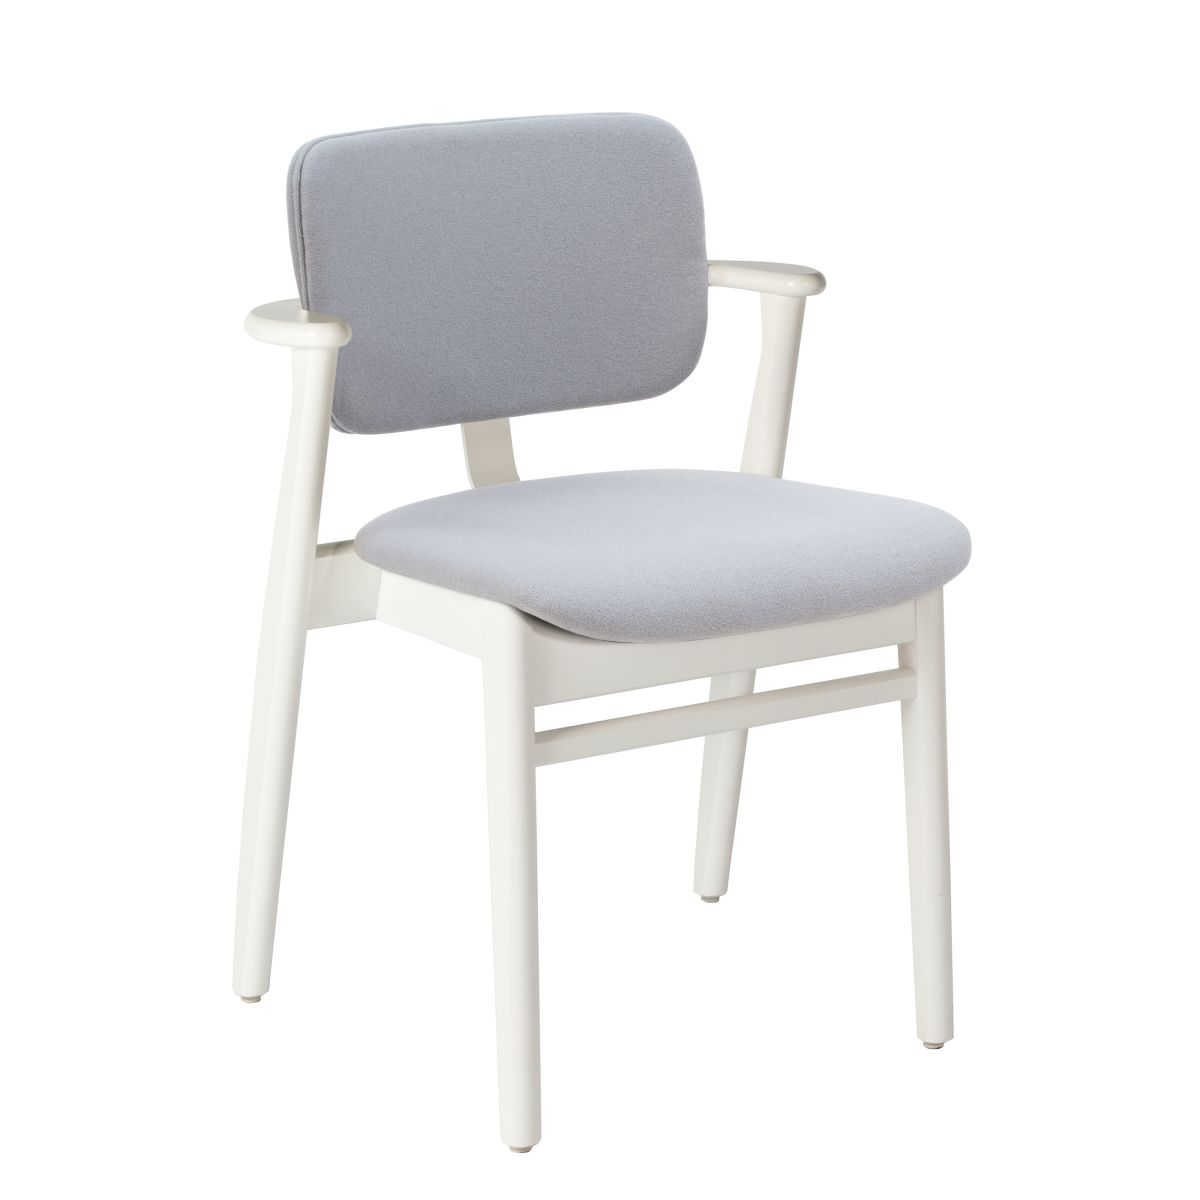 Domus-Chair-legs-white-laquered-birch_seat-back-fabric-grey-2651009